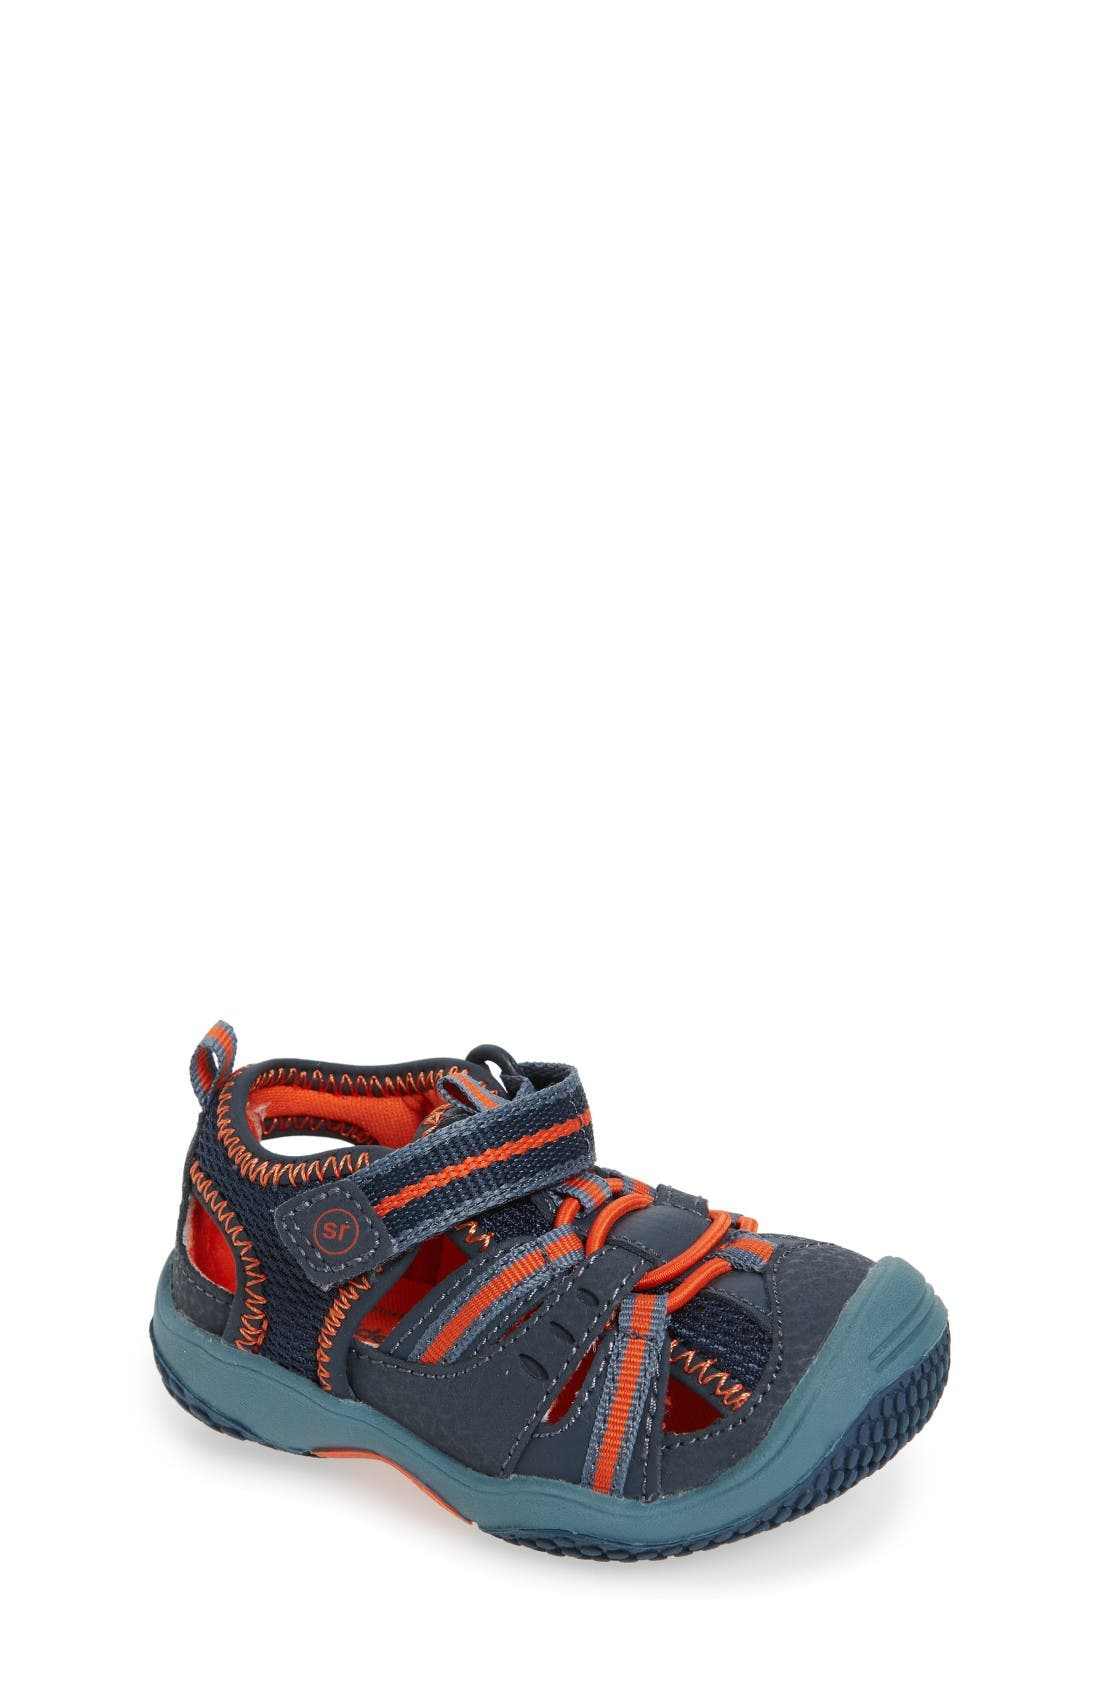 Baby Riff Sport Sandal,                             Main thumbnail 1, color,                             Navy/ Orange Leather